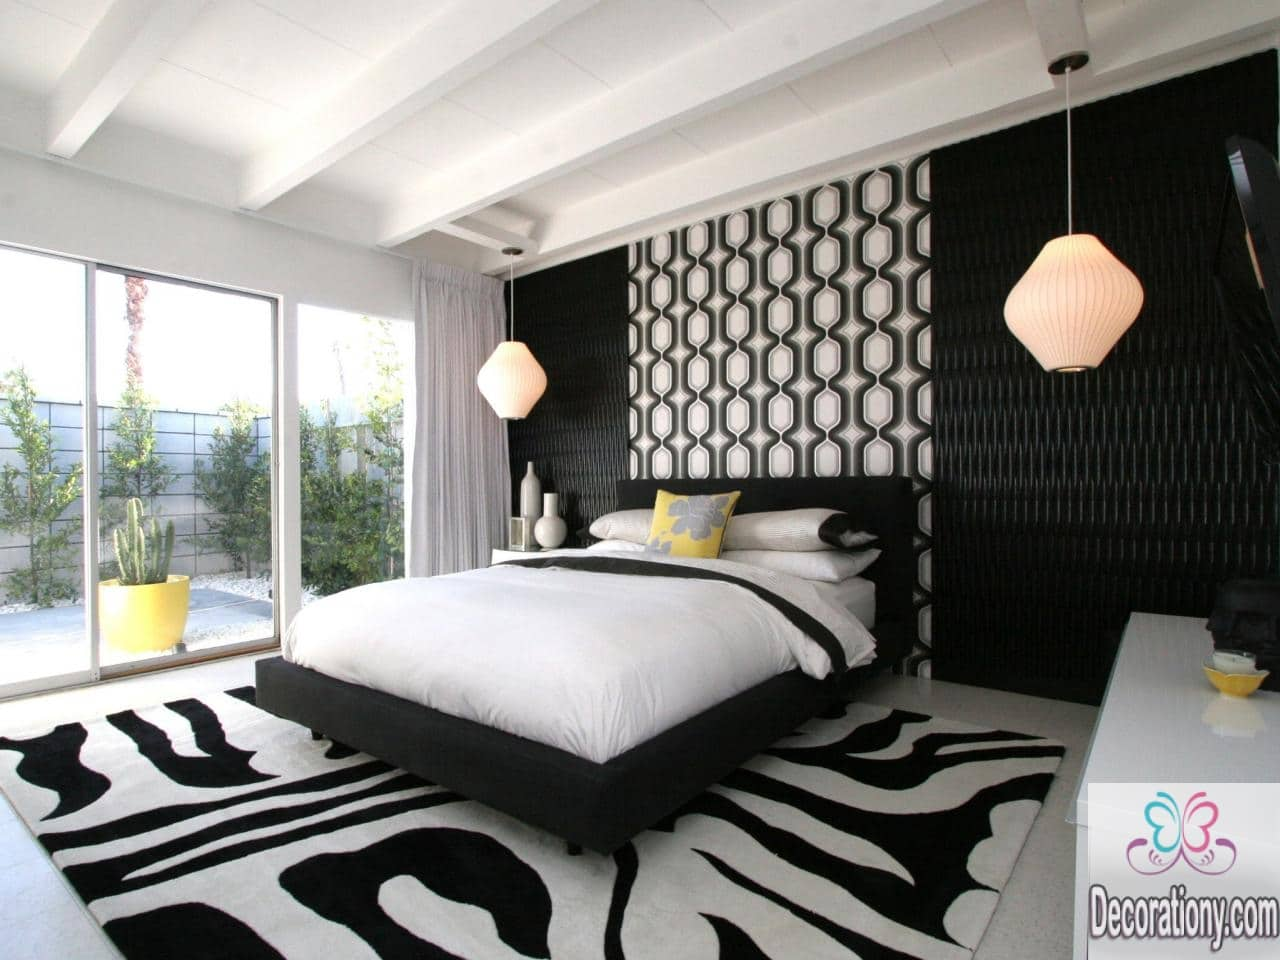 35 affordable black and white bedroom ideas decoration y for Best bedroom ideas 2016